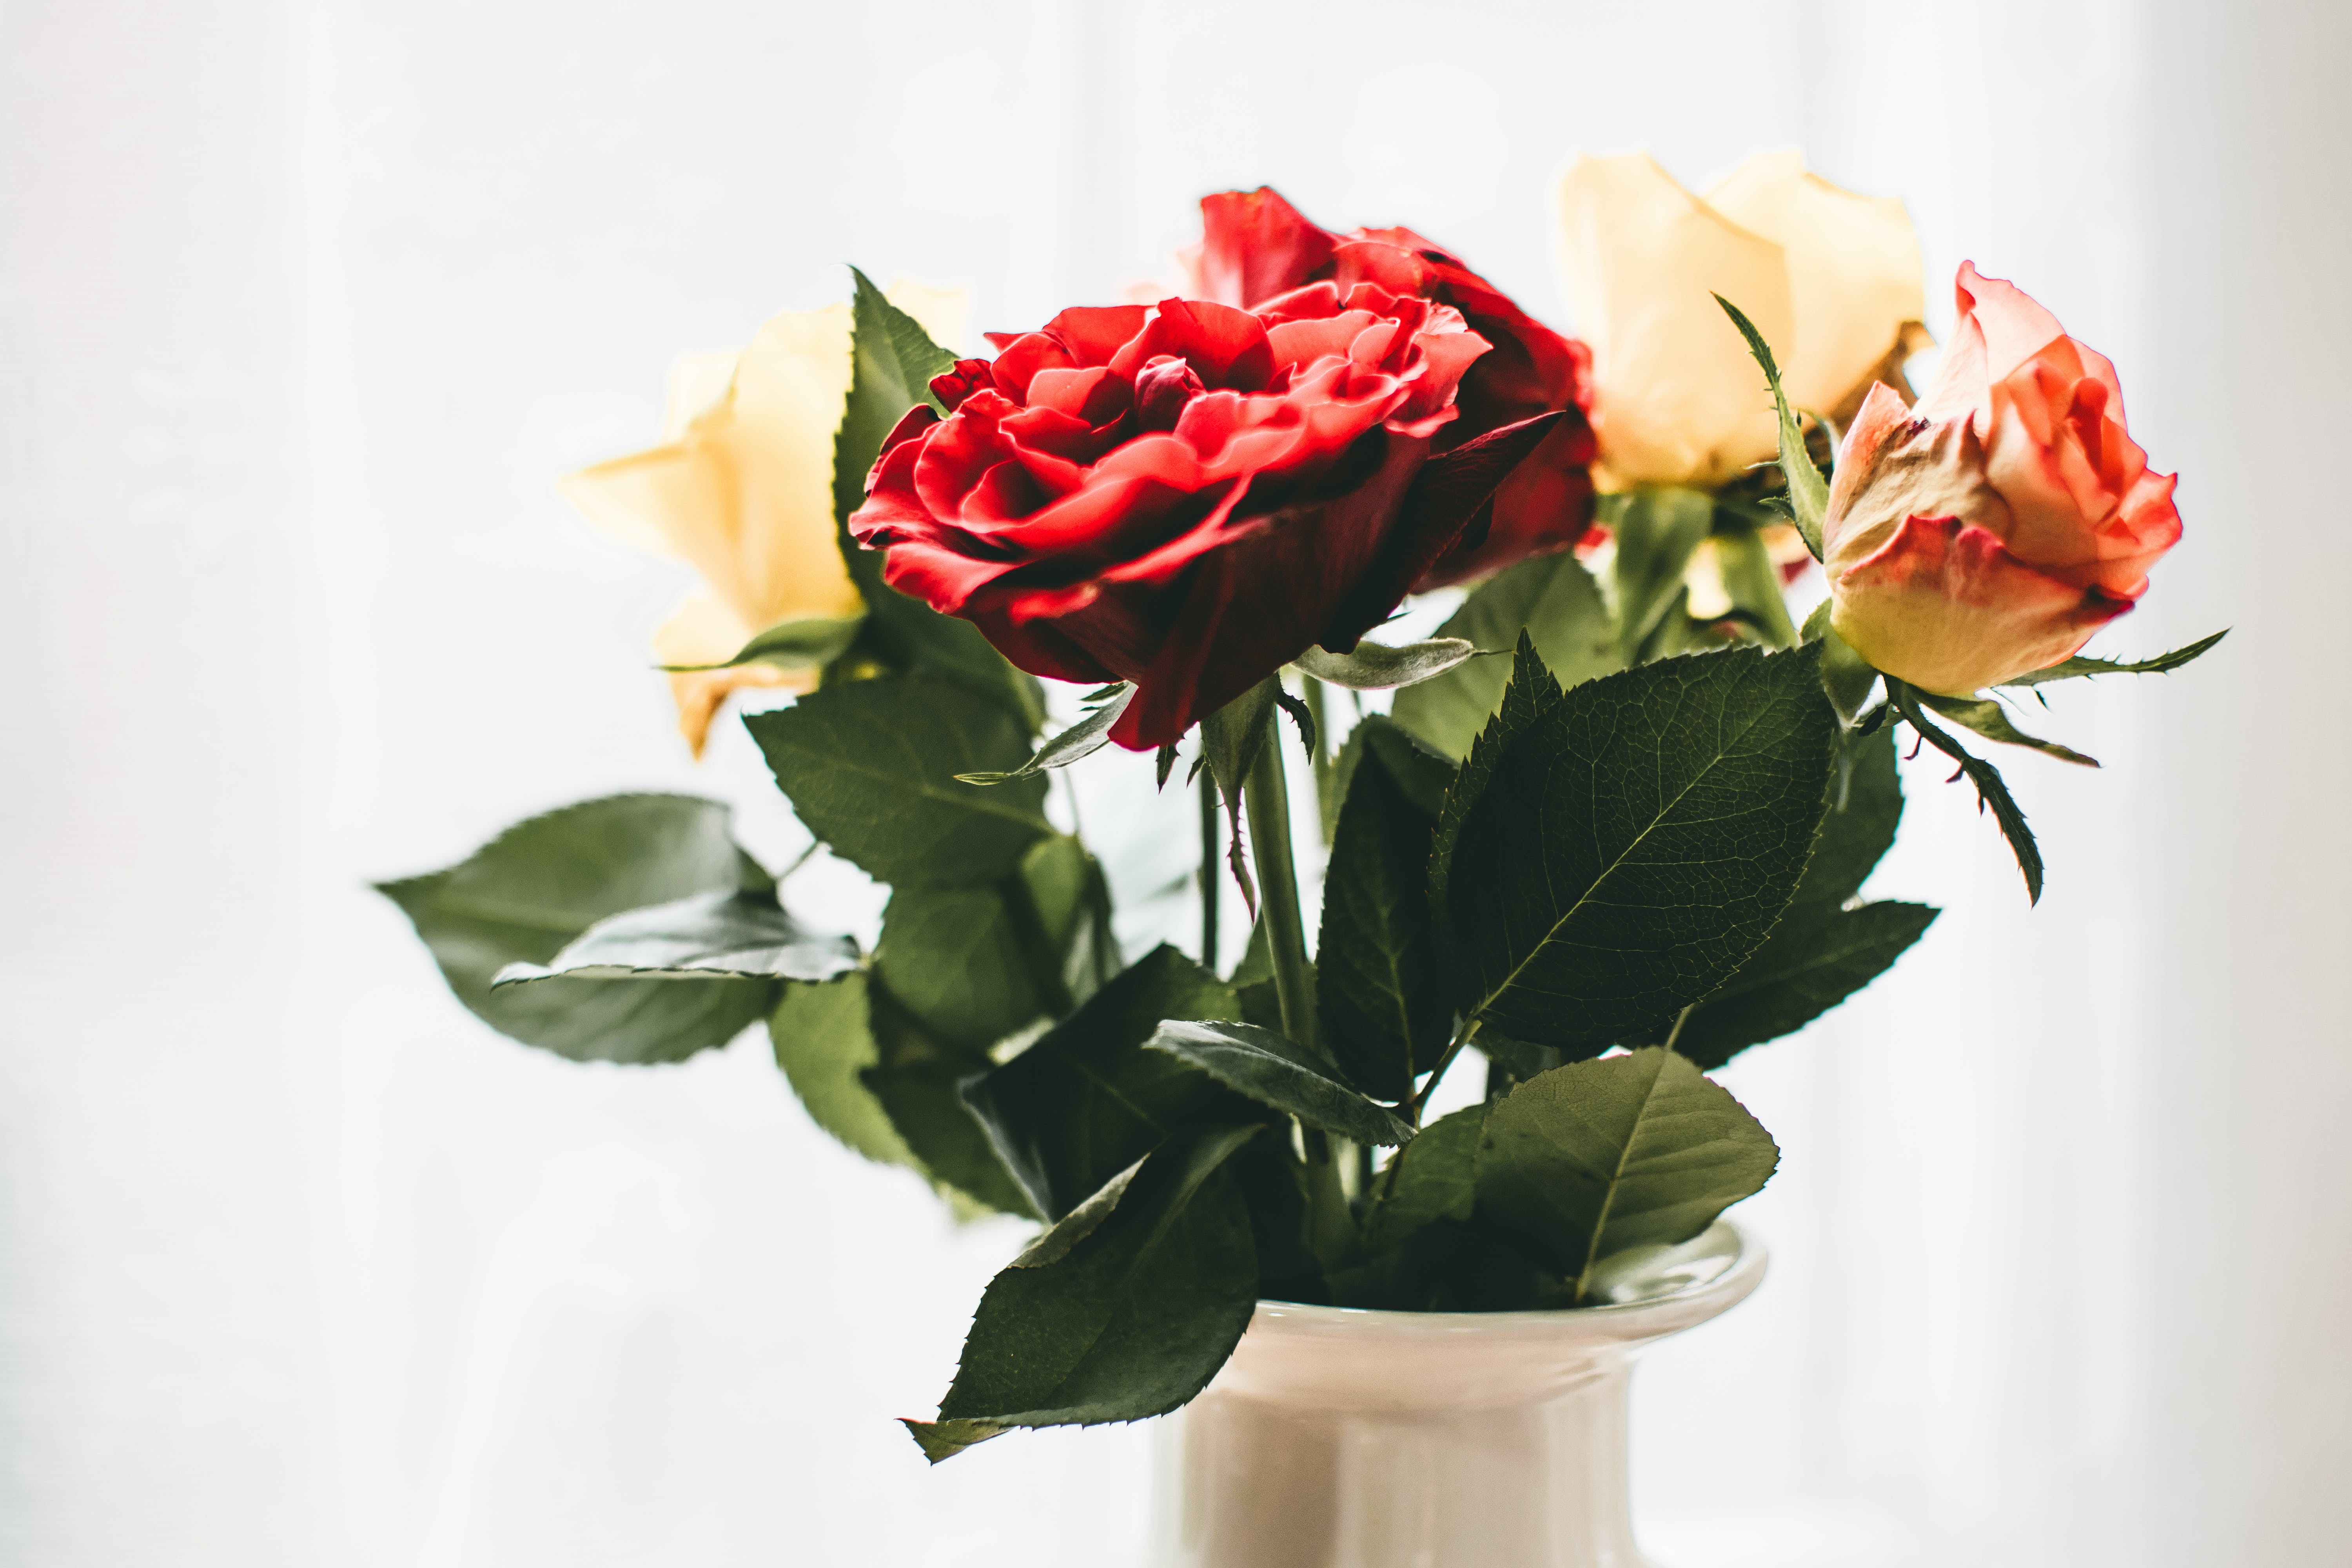 Red and White Flowers With White Vase